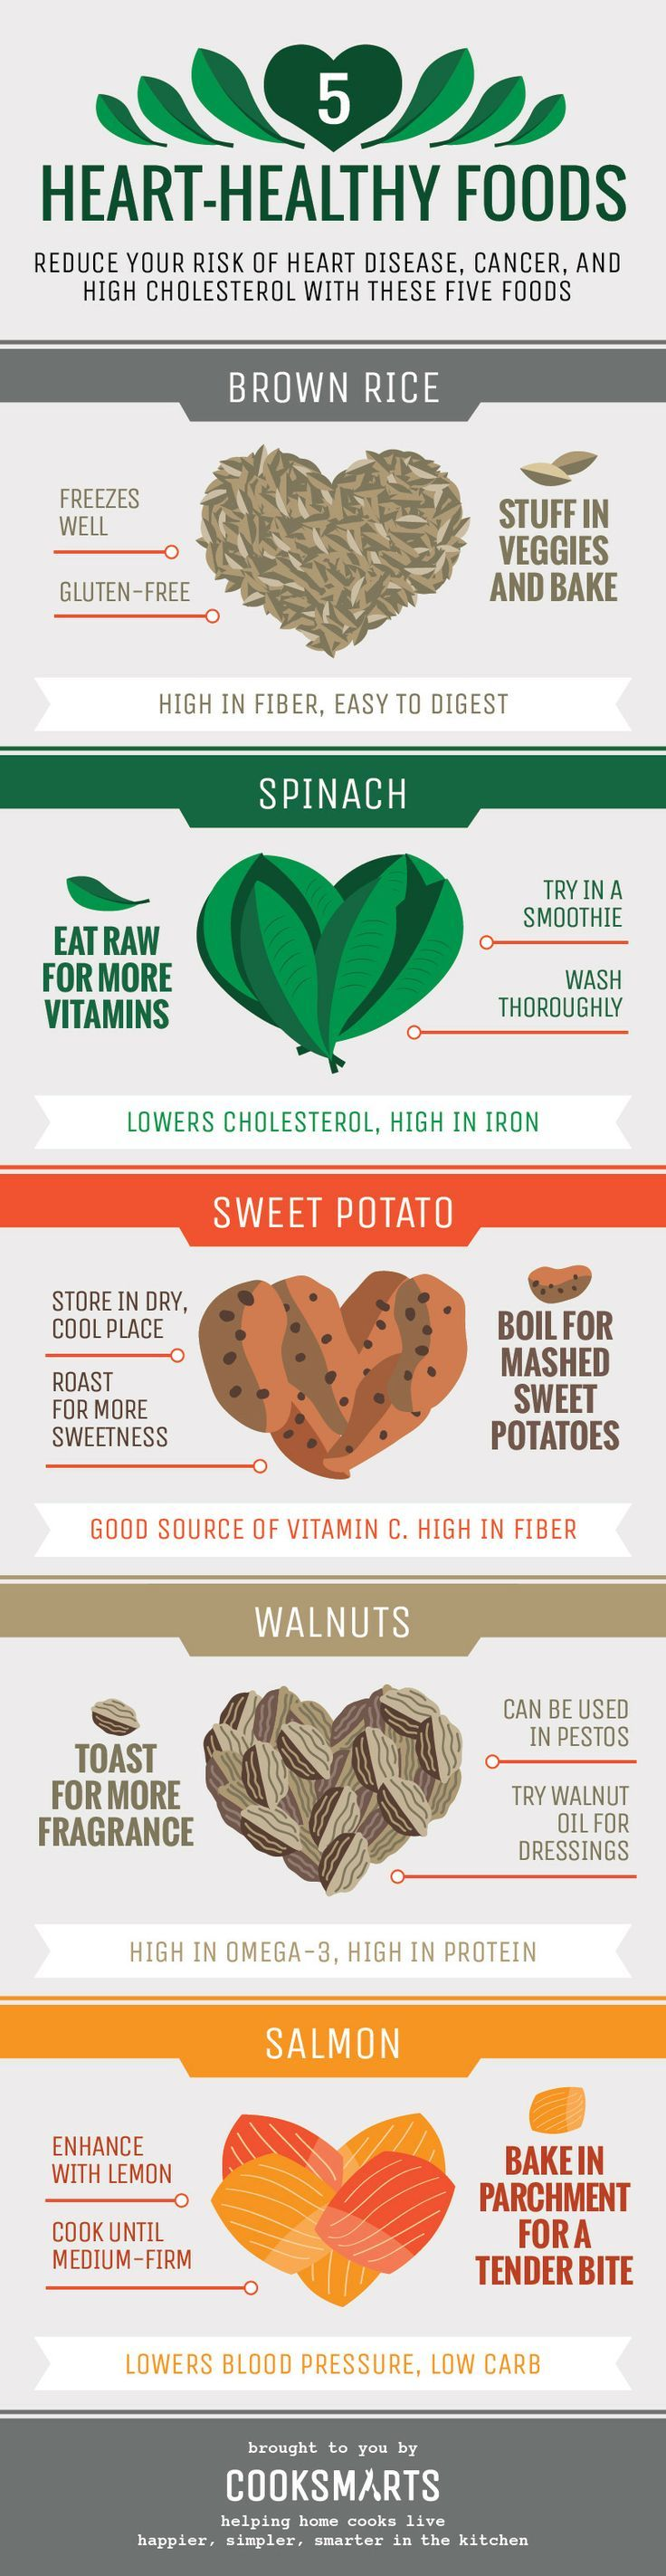 Reduce your risk of heart disease, cancer and high blood pressure with these heart healthy foods...